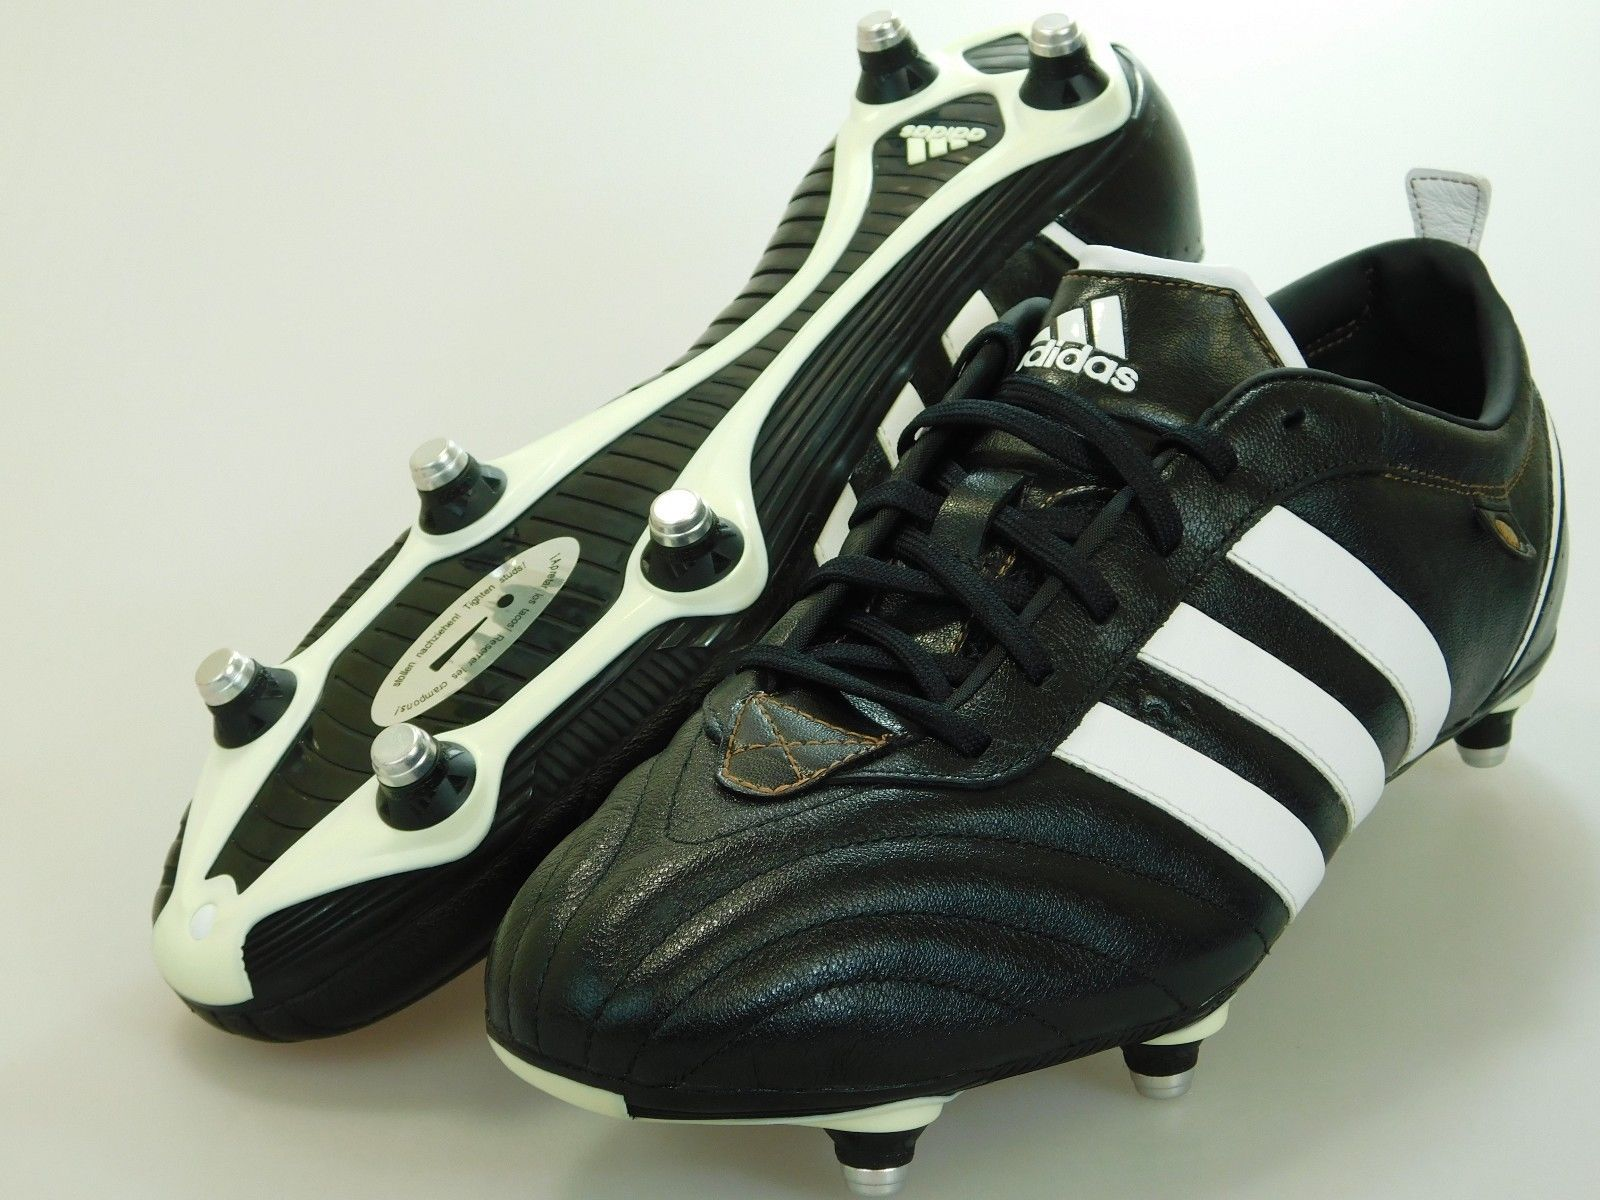 97a9288ee Buy soccer cleats size 10   OFF79% Discounts